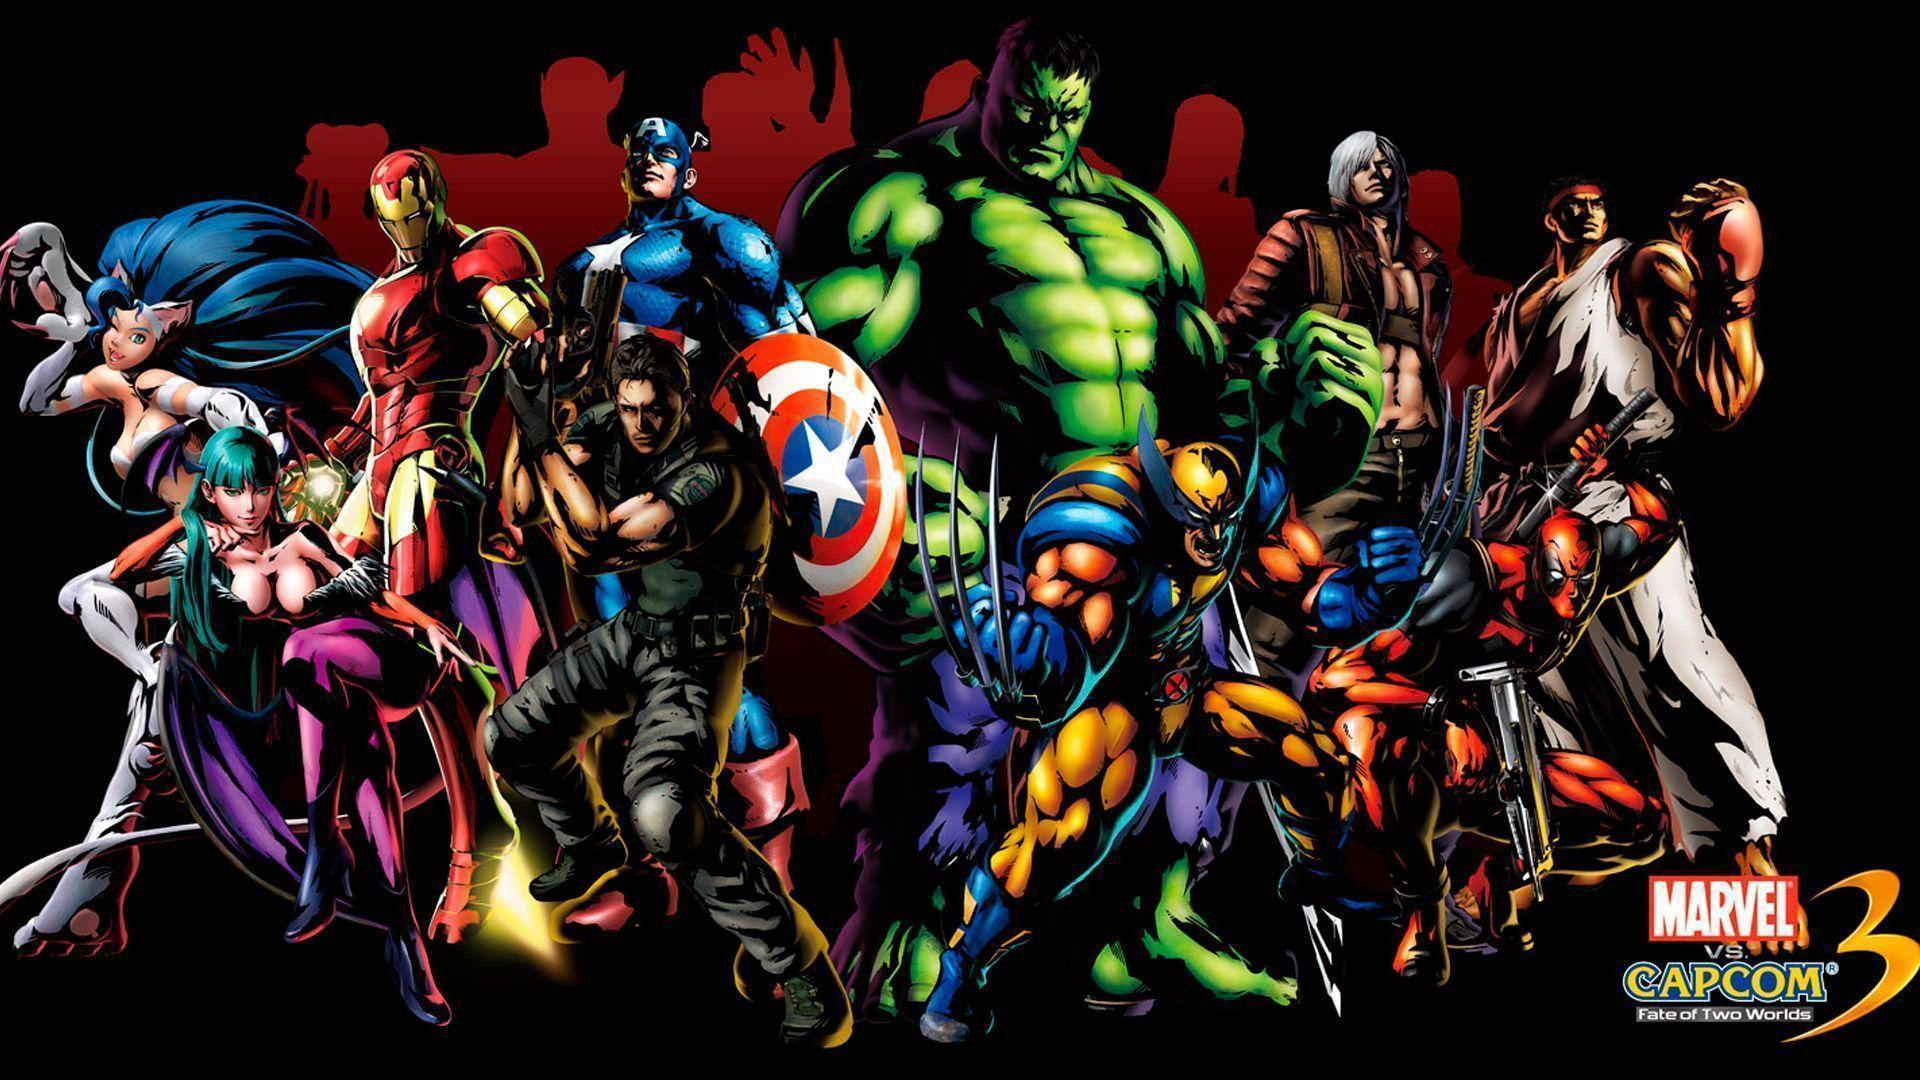 Fonds d'écran Marvel : tous les wallpapers Marvel